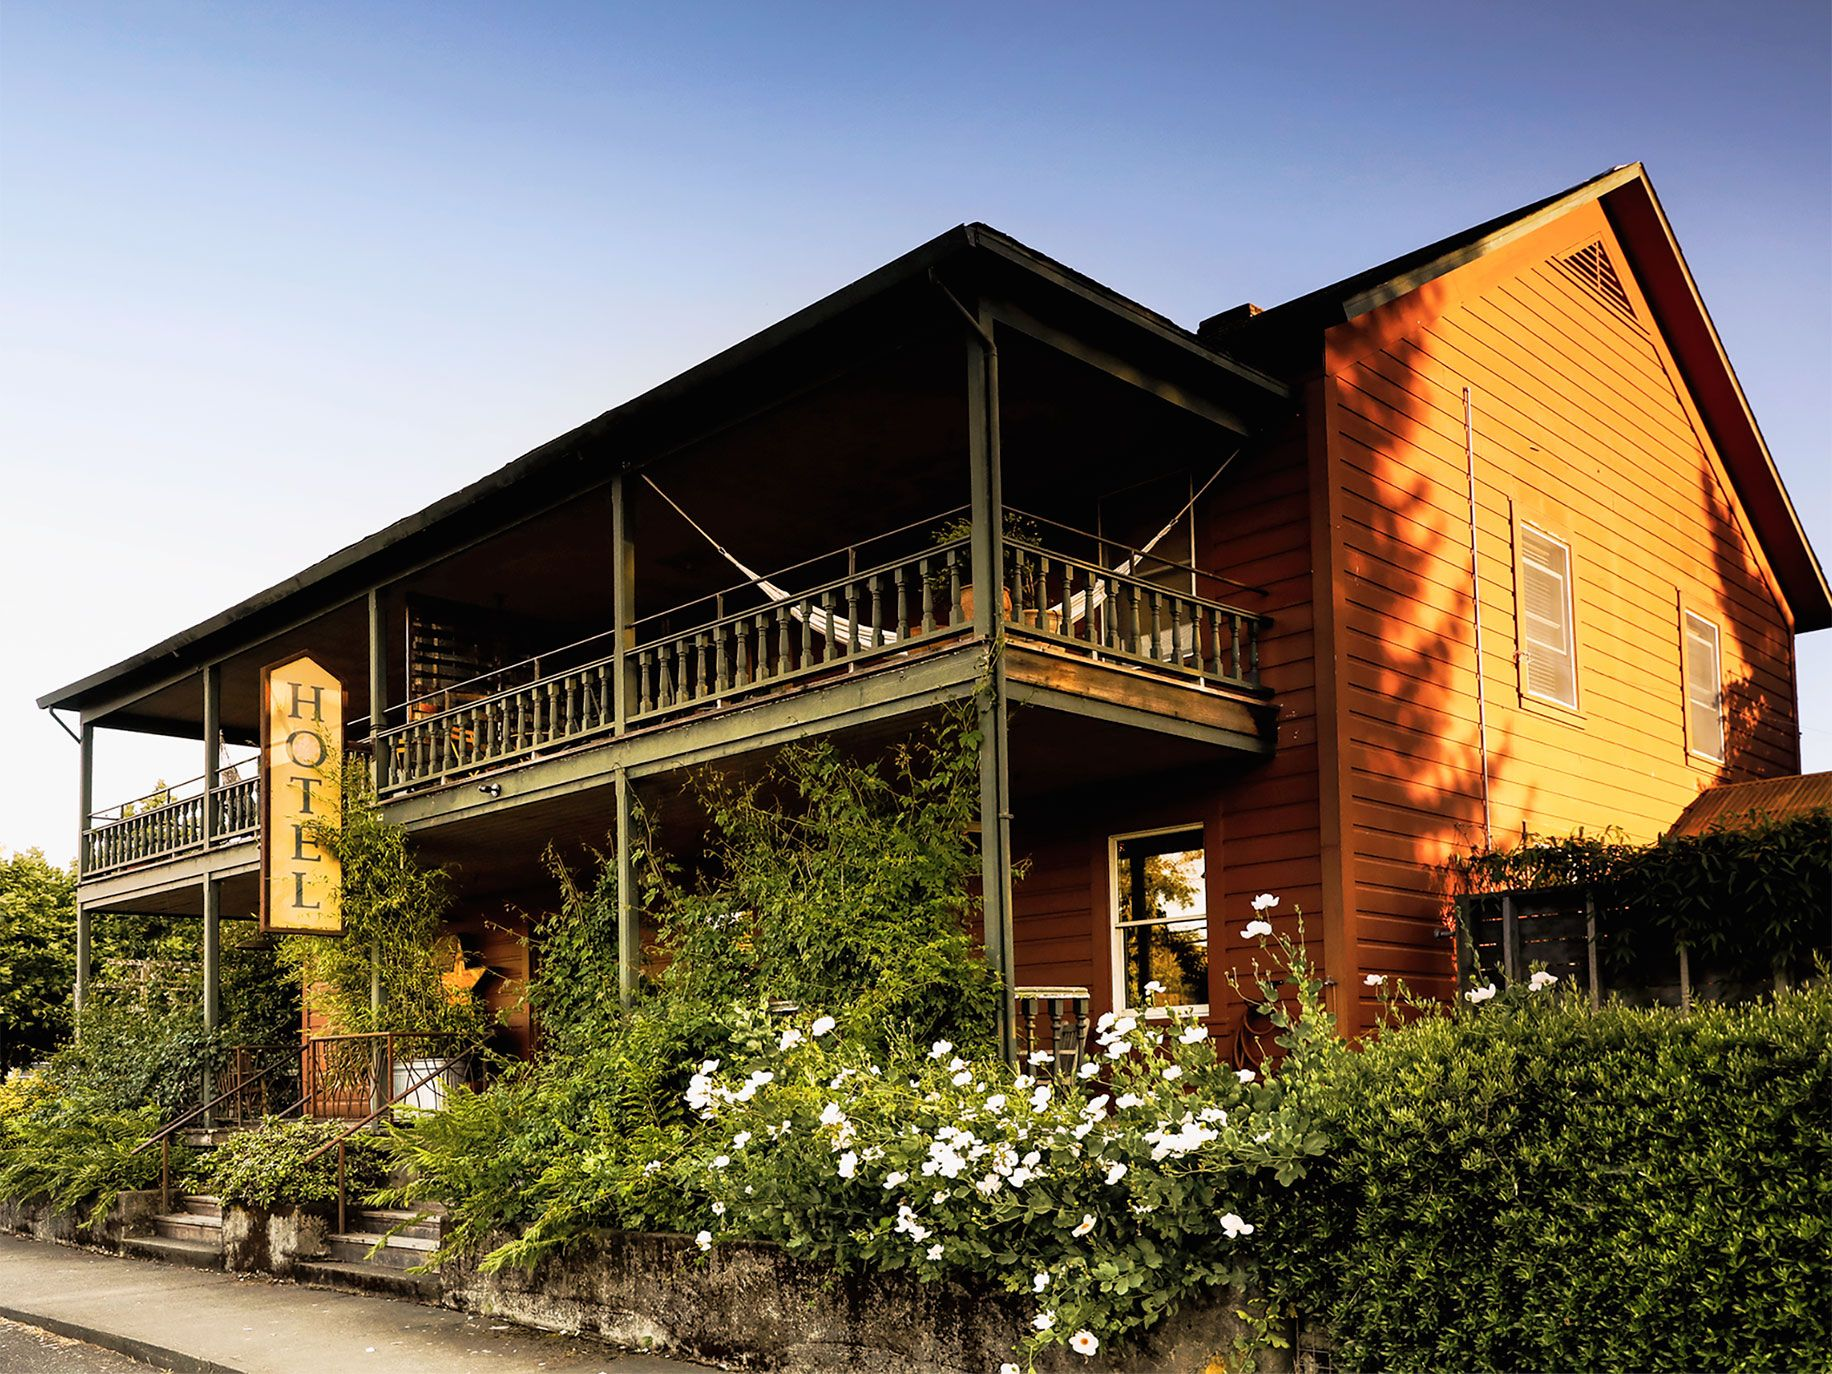 The Boonville Hotel was built in the 1860s.